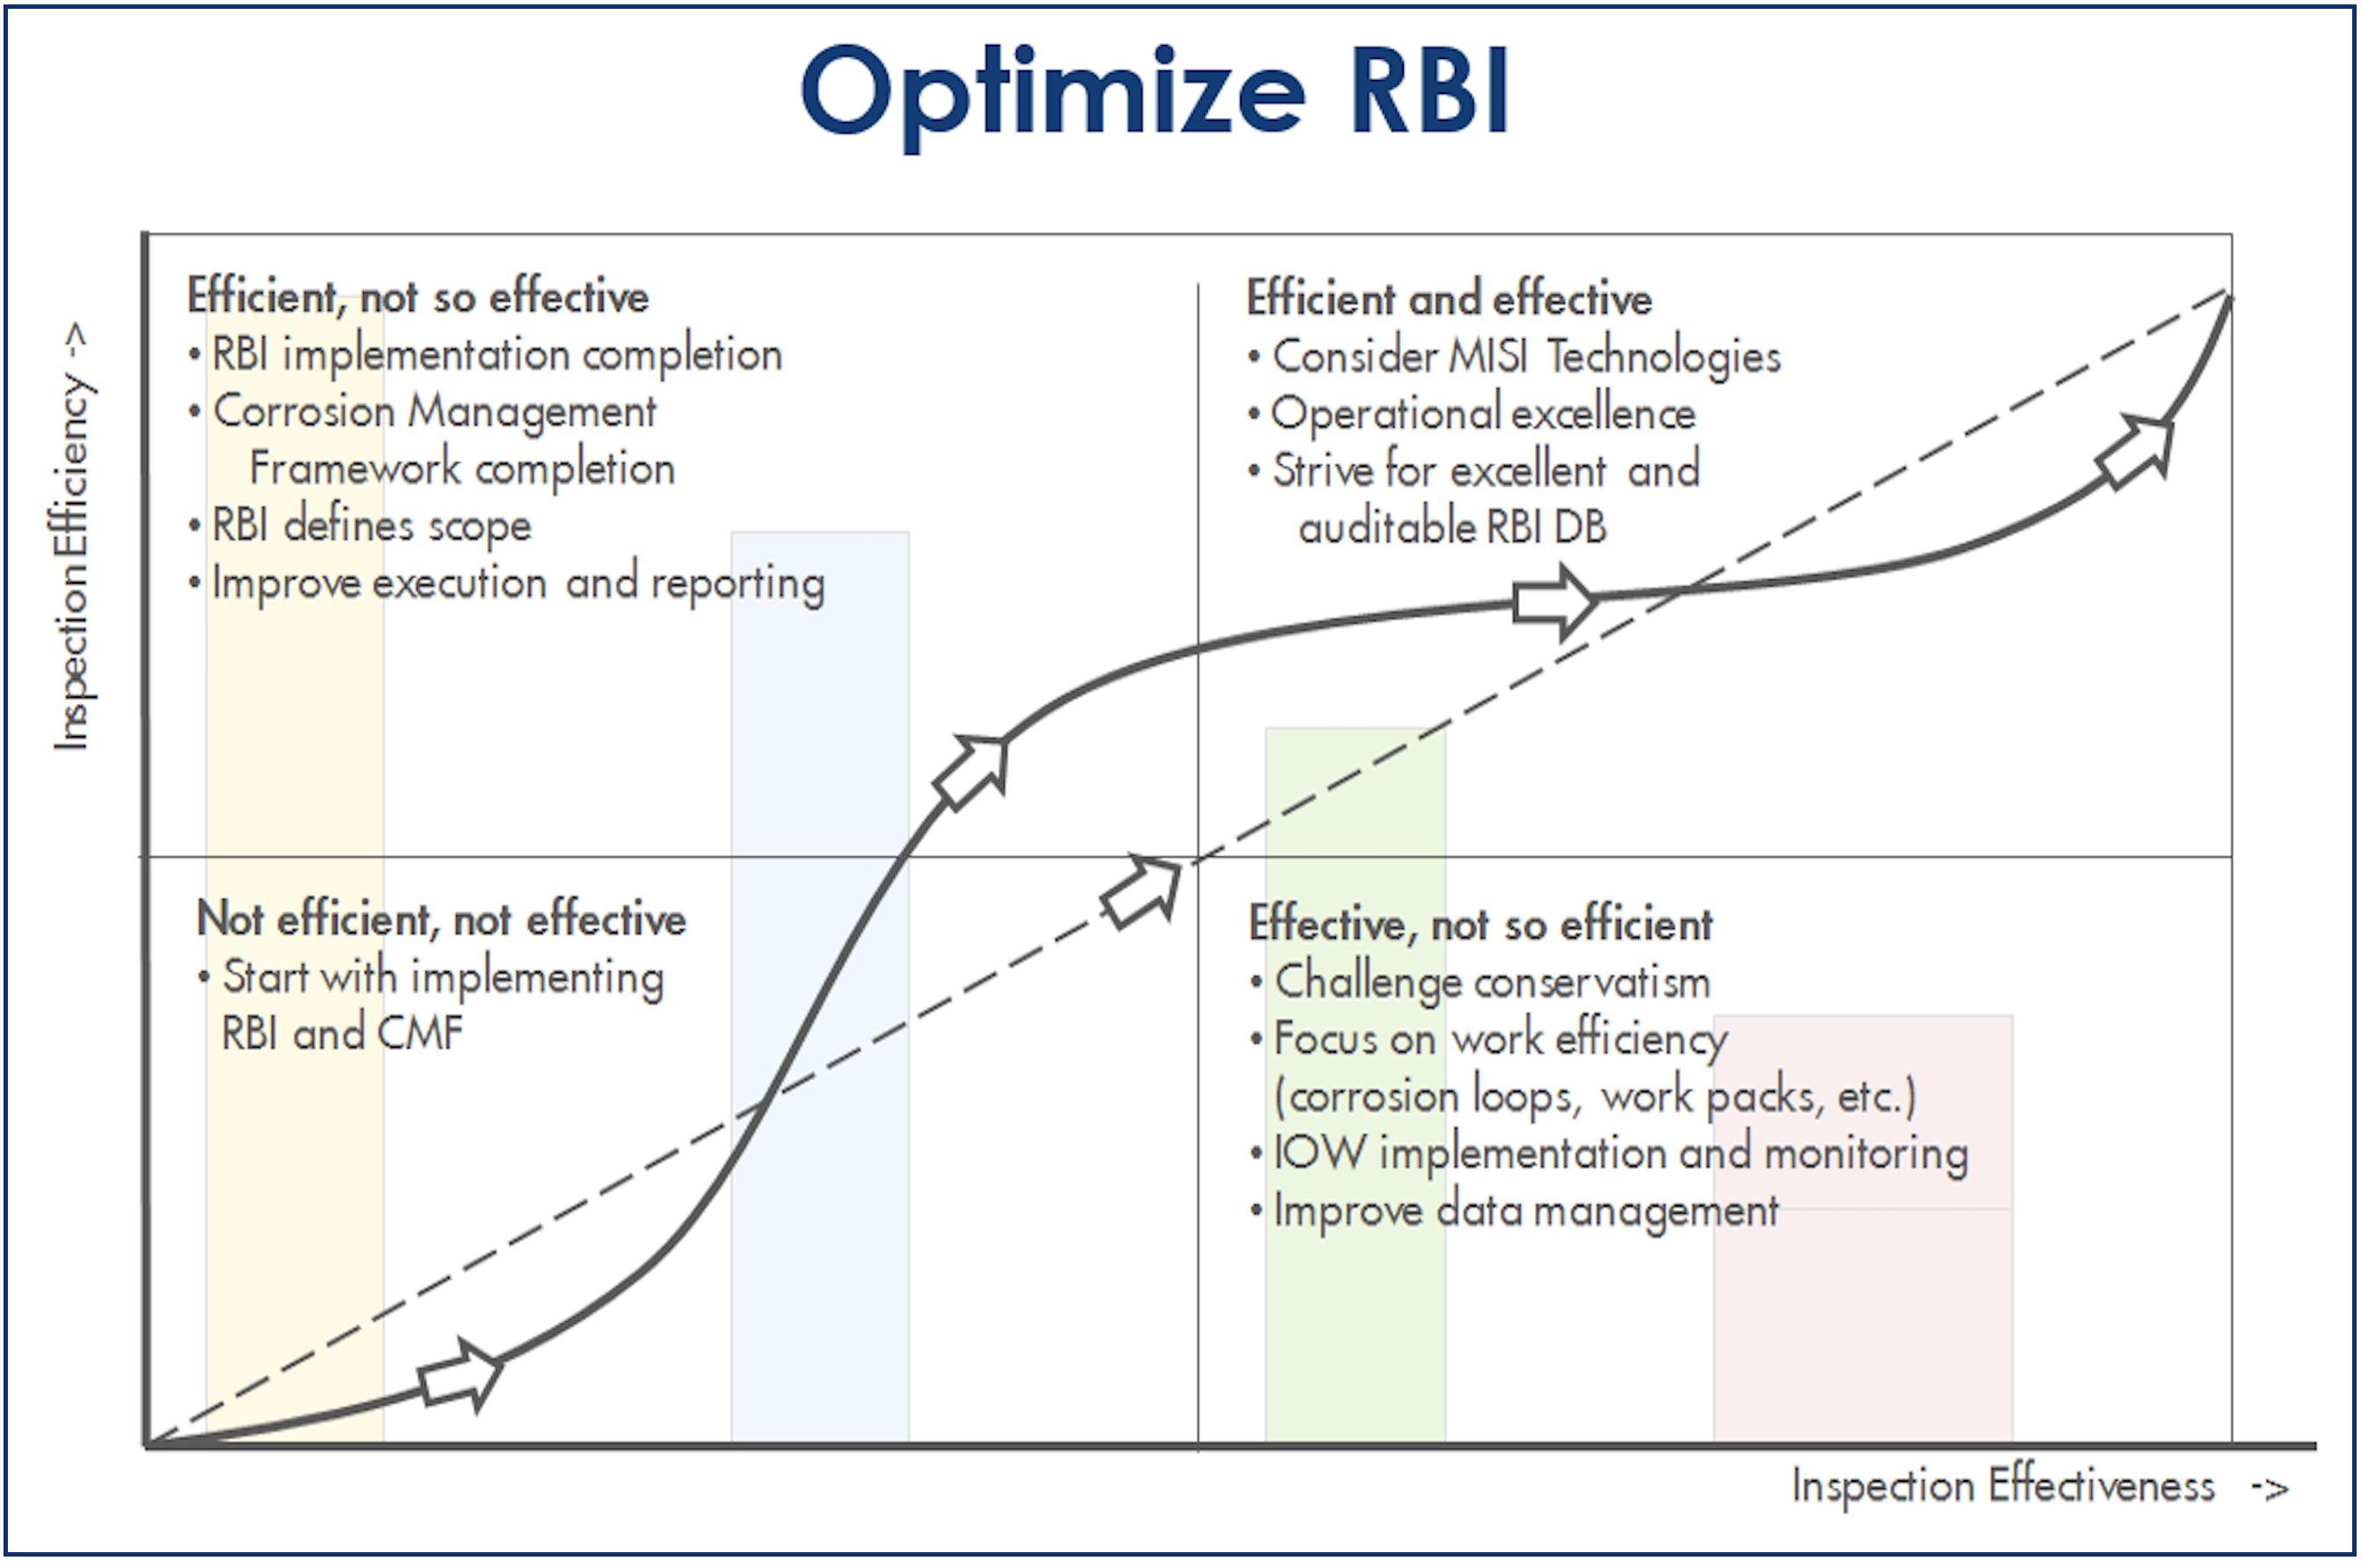 Optimize_RBI